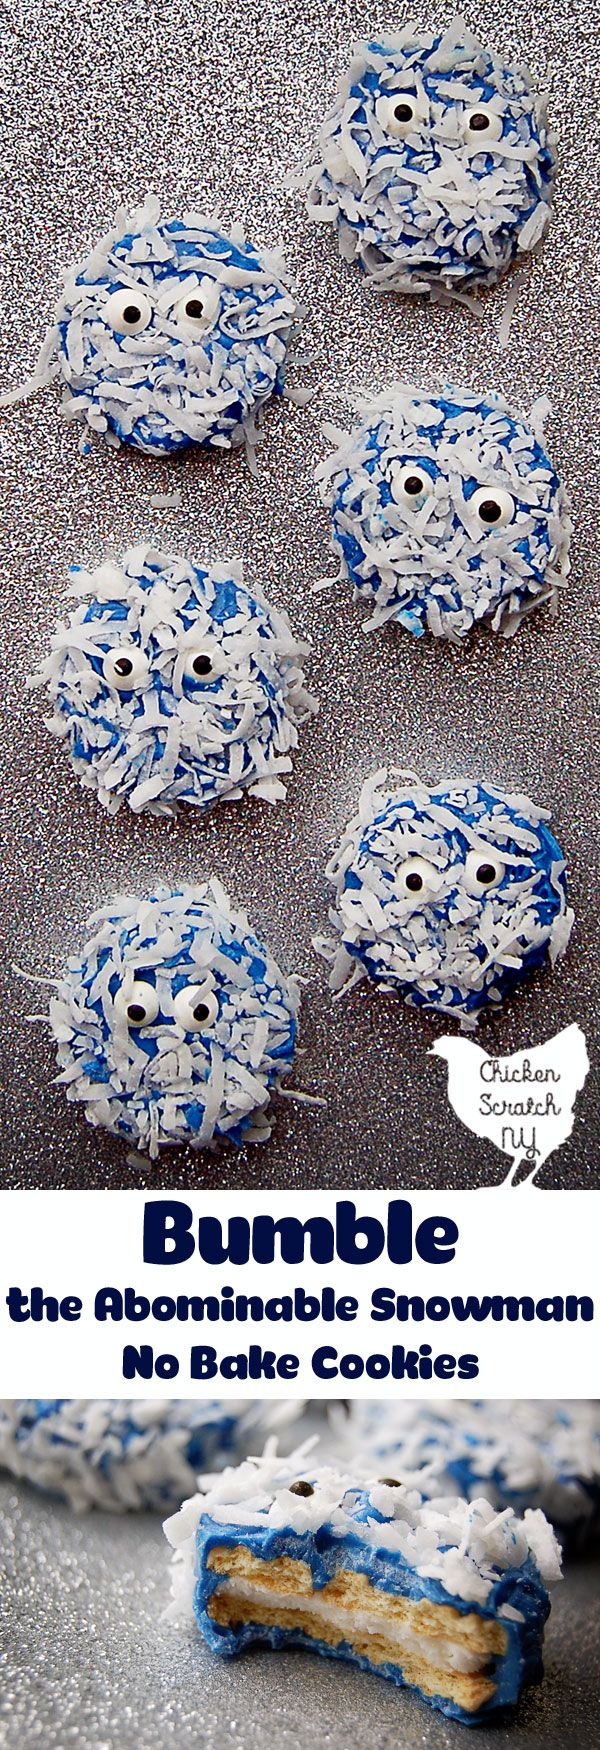 Whip up a batch of no-bake Bumble the Abominable Snowman Cookies with blue candy coating, candy eyes and a shaggy coat of coconut